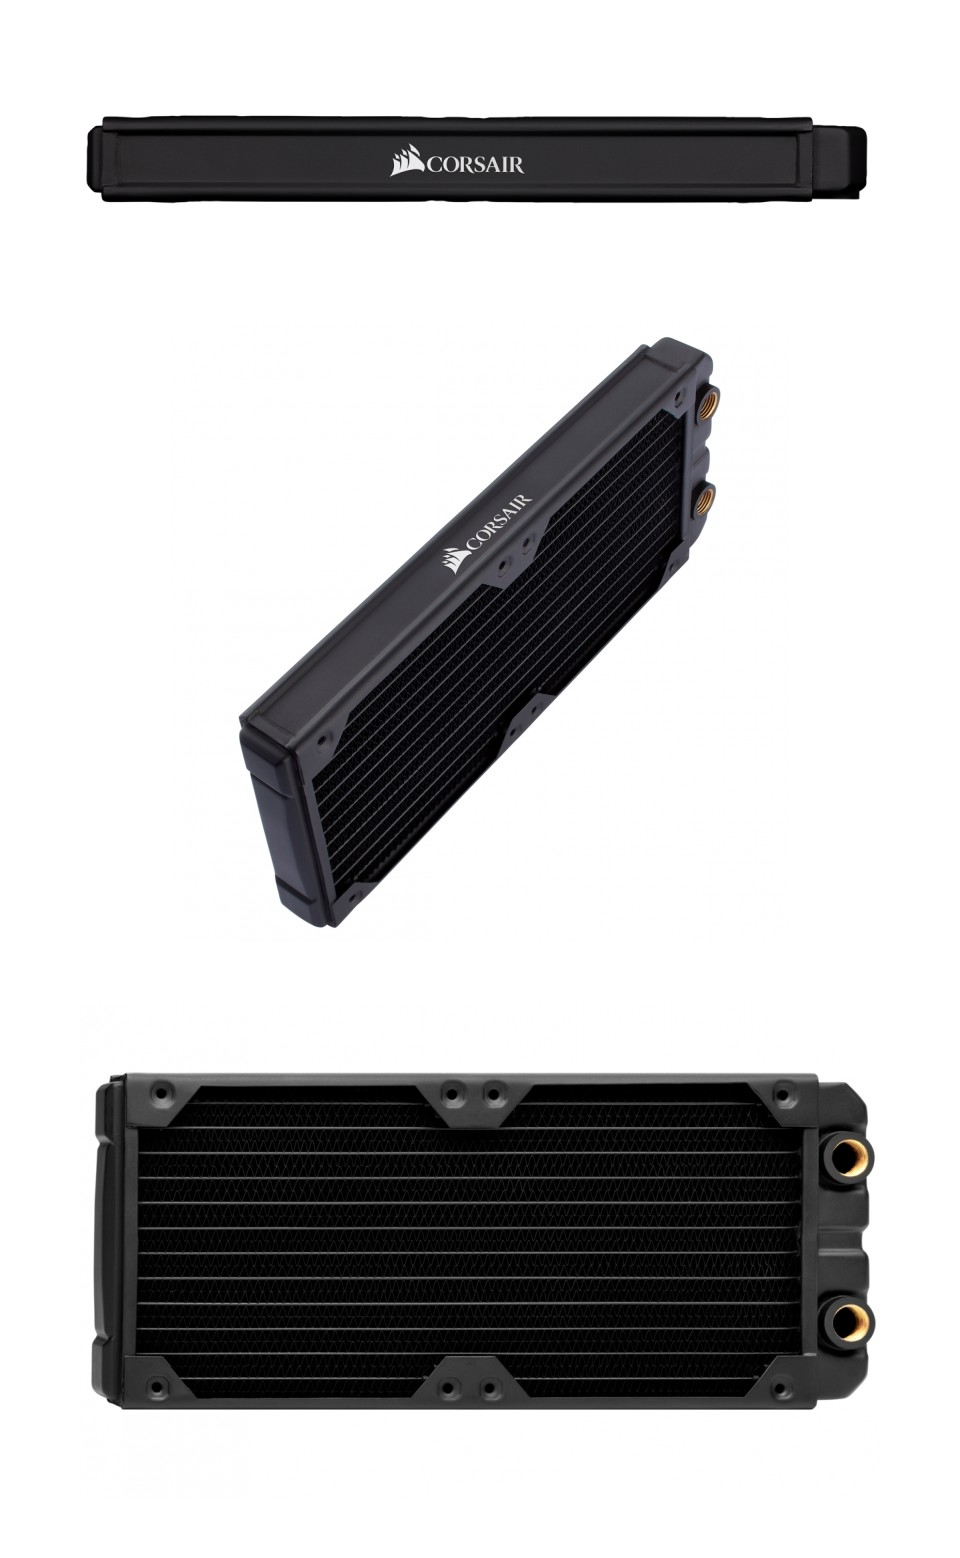 Corsair Hydro X Series XR5 240mm Water Cooling Radiator product